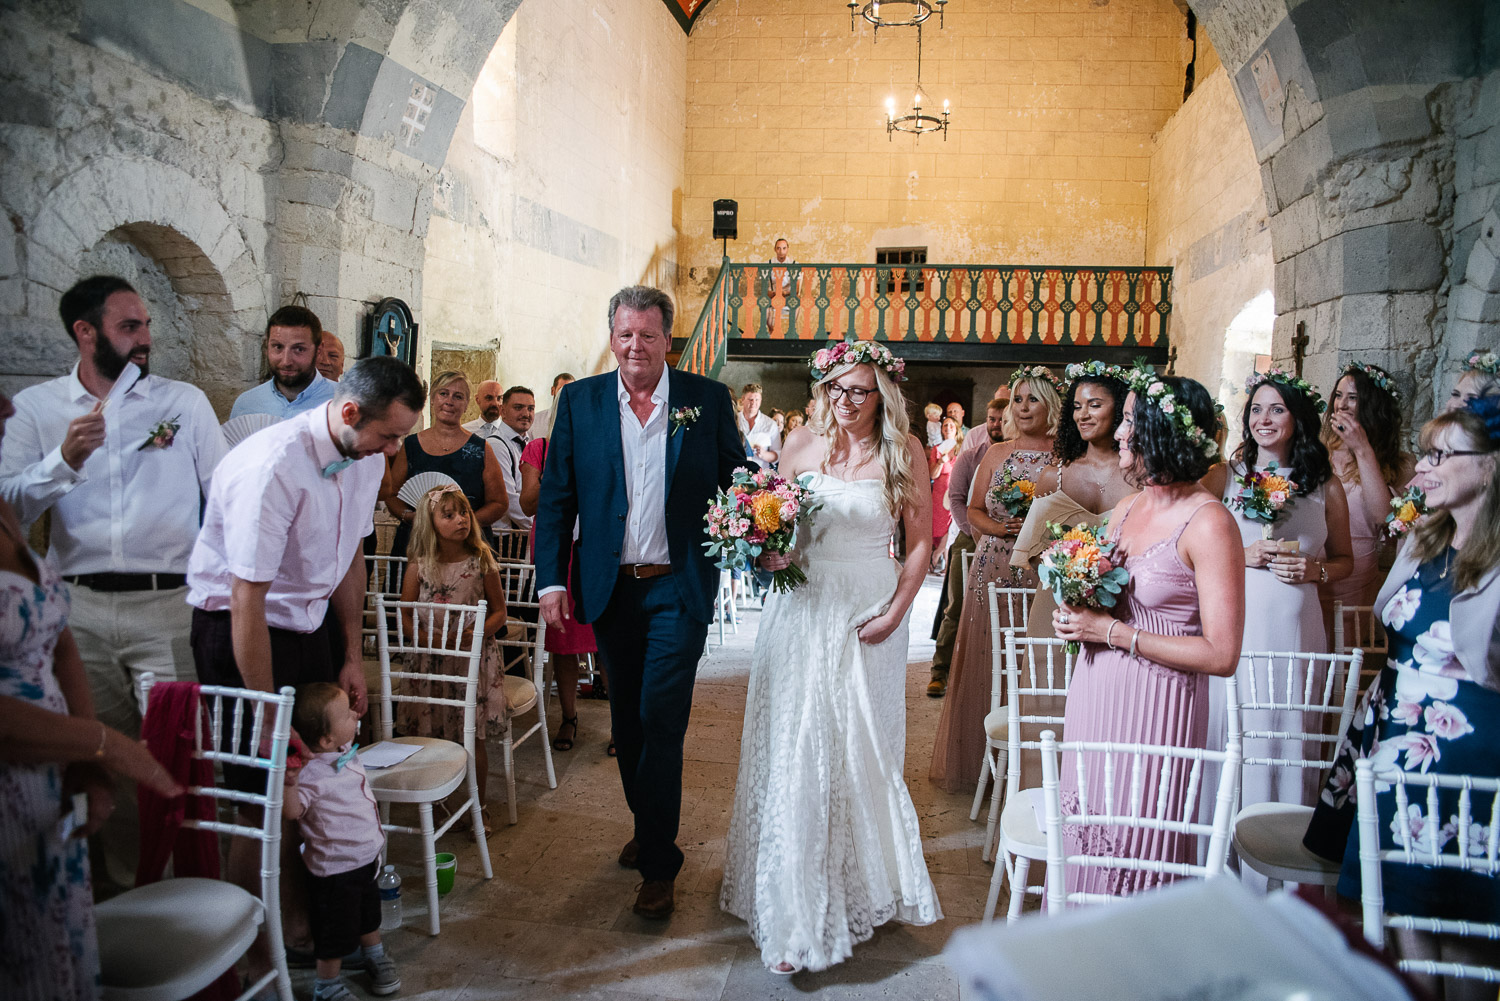 chateau_de_lisse_gers_wedding_katy_webb_photography_france_UK46